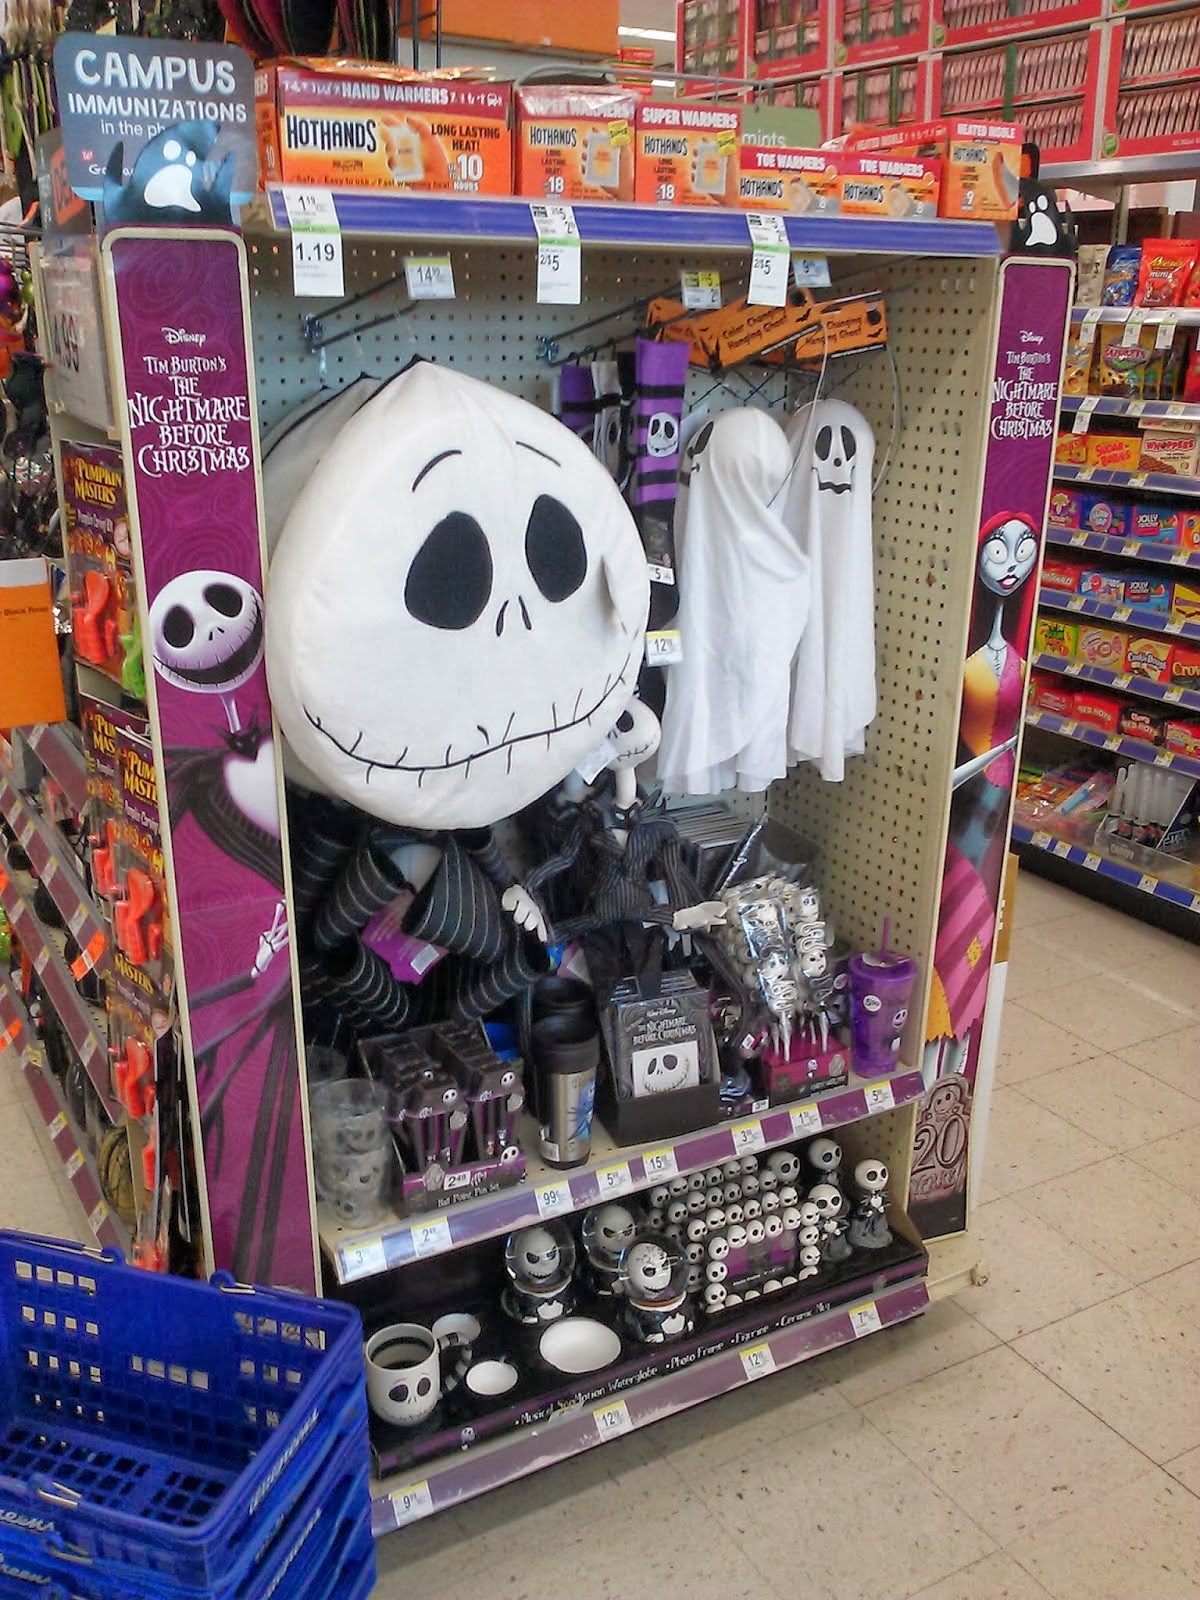 ... Anny .Com: Oh Man, Walgreens had Nightmare Before Christmas Stuff